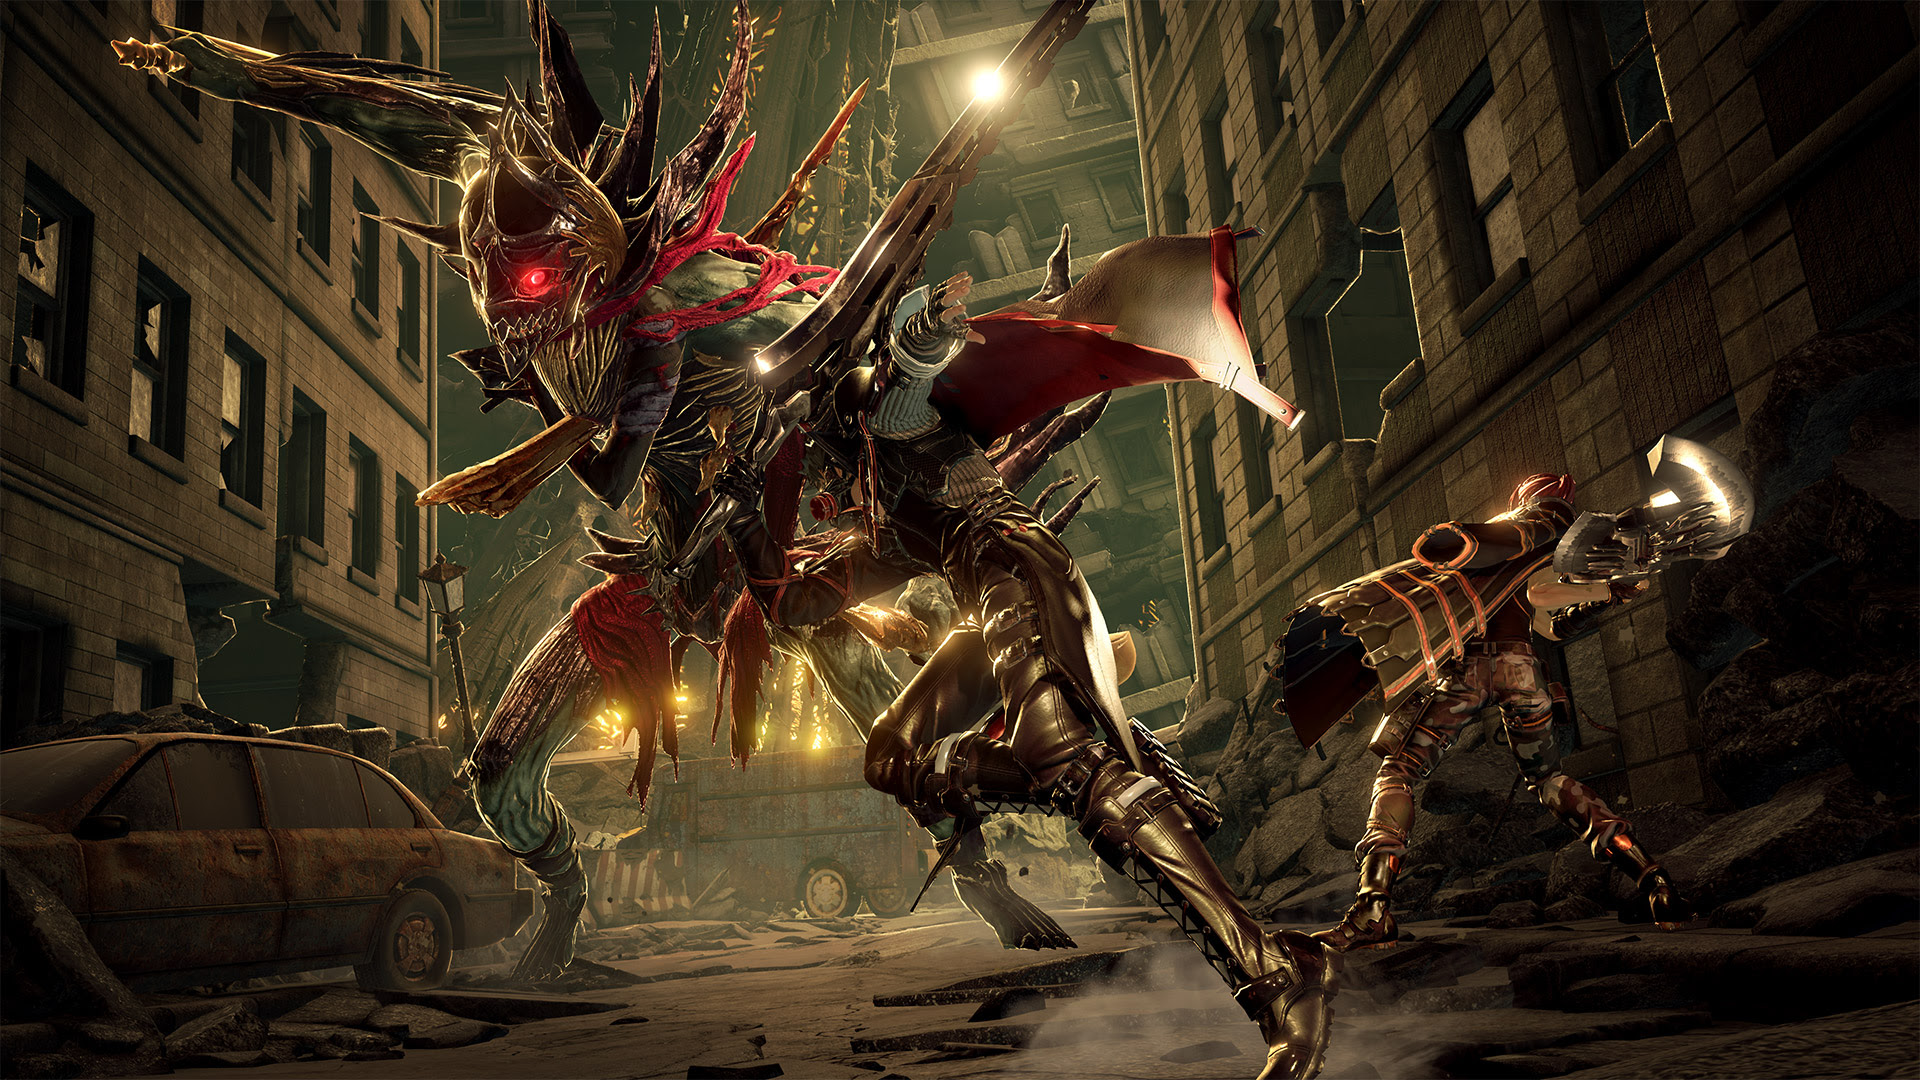 Code Vein, Bandai Namco's vampire Souls looking joint, is still rad screenshot